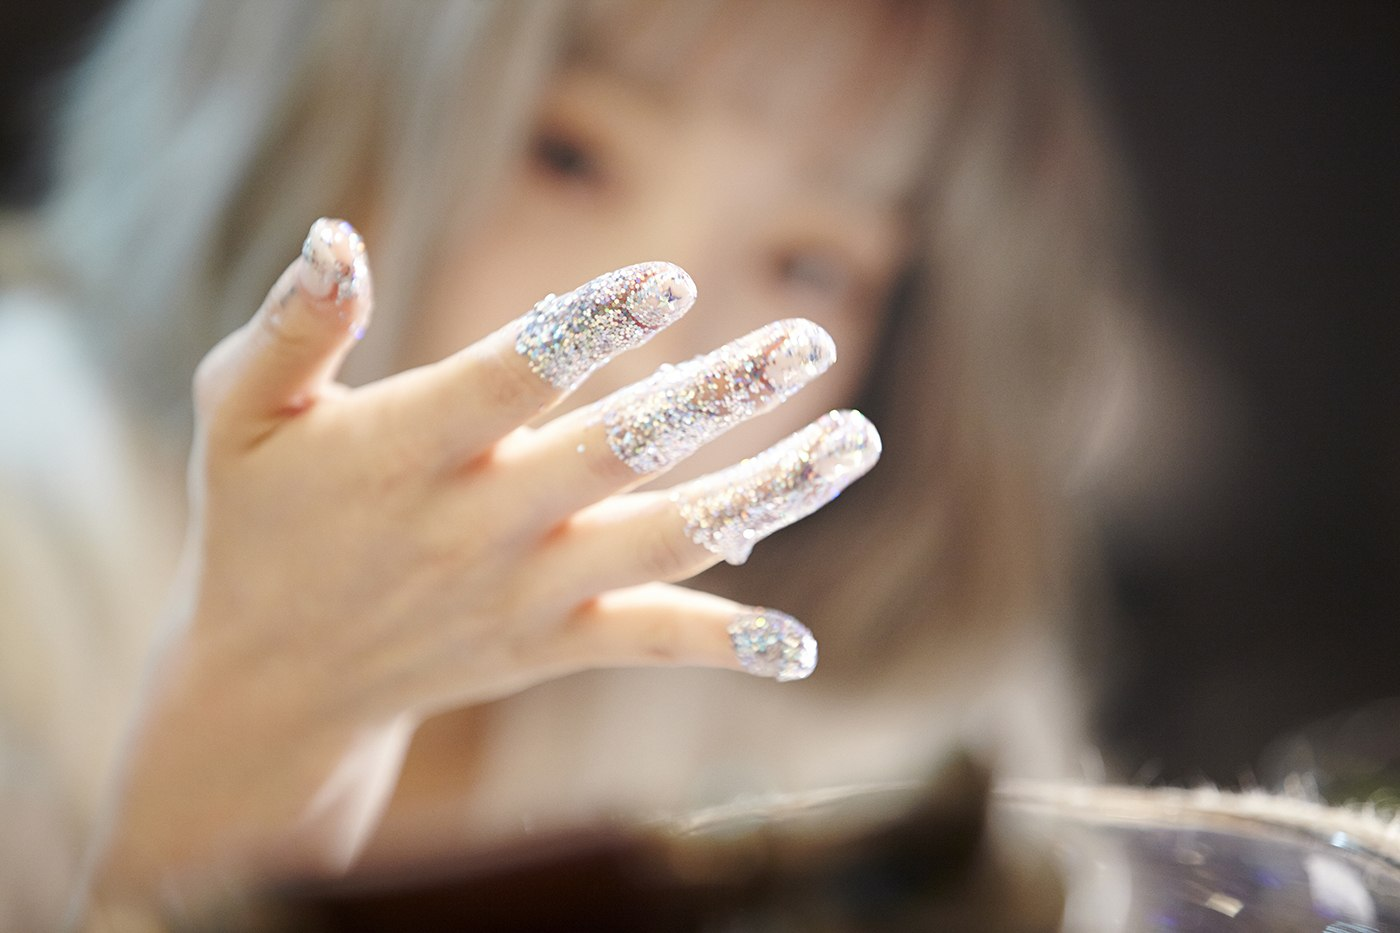 10+ Female Idols With The Most Beautiful Hands - Koreaboo